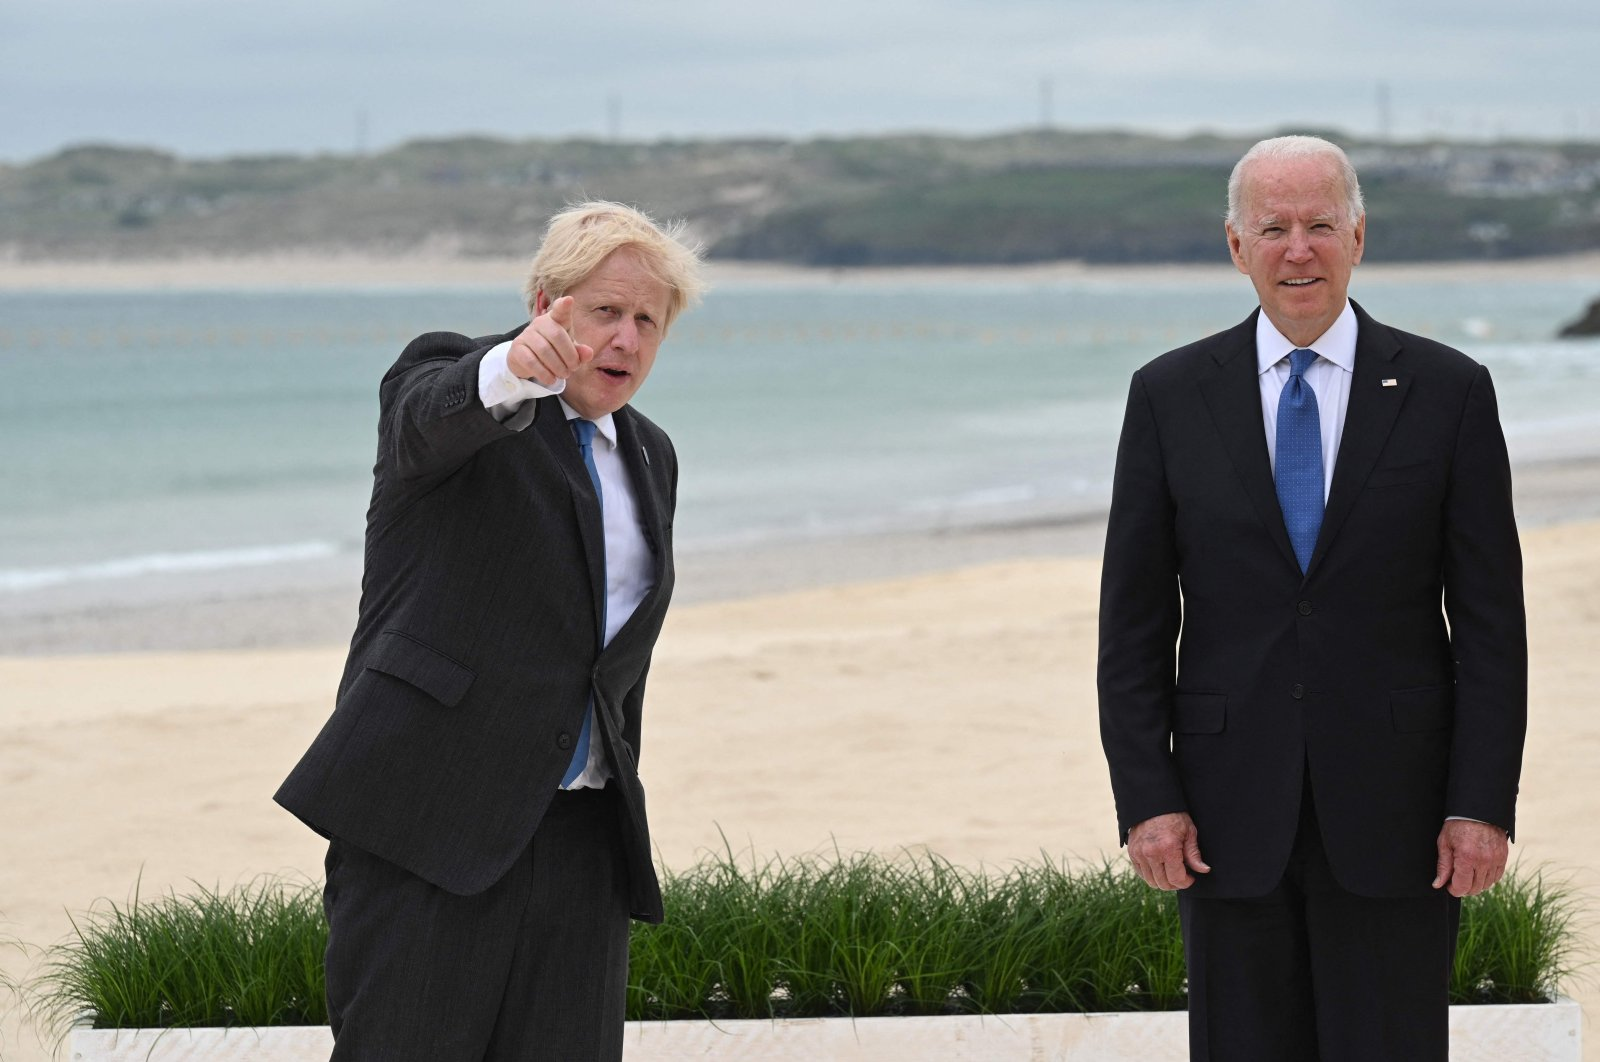 Britain's Prime Minister Boris Johnson (L) US President Joe Biden (R) pose for an official photograph at the start of the G7 summit in Carbis Bay, Cornwall, south-west England on June 11, 2021. (Photo by Leon Neal / POOL / AFP)